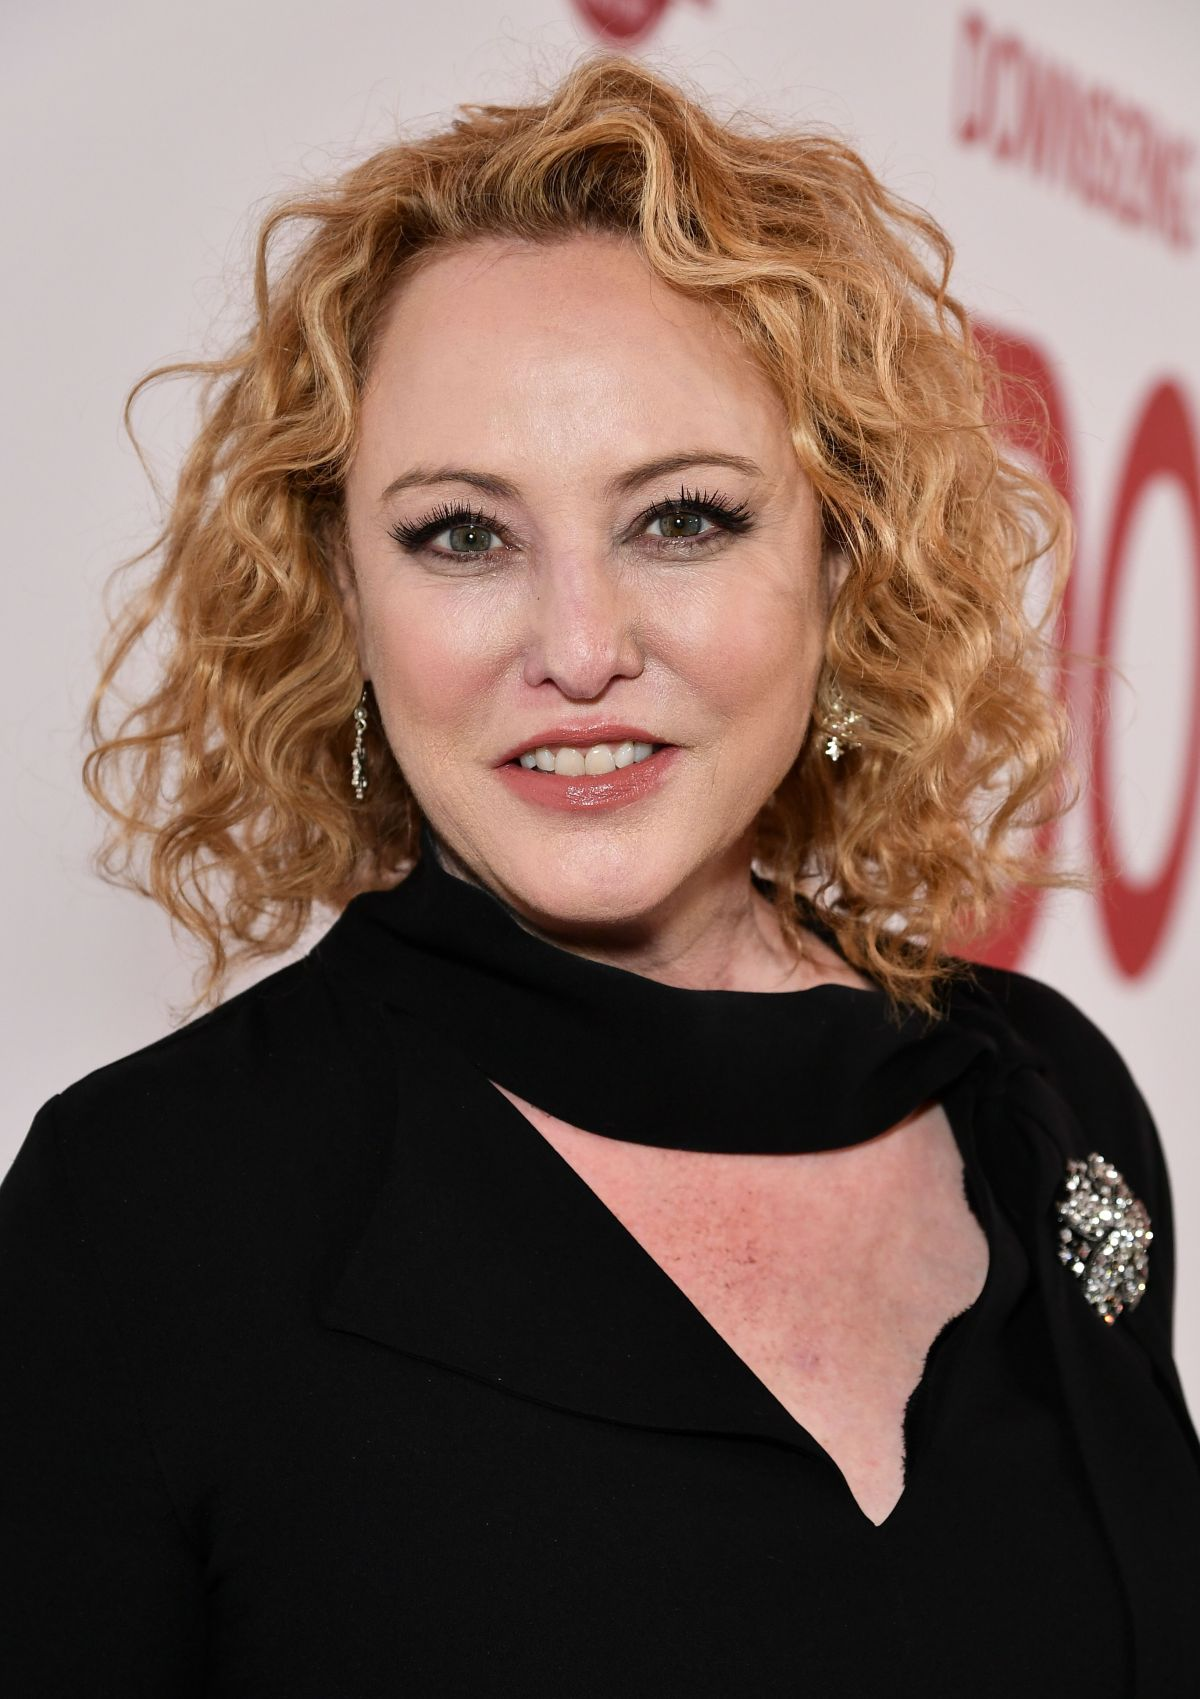 Is Virginia Madsen dead? - Is That Person Dead?